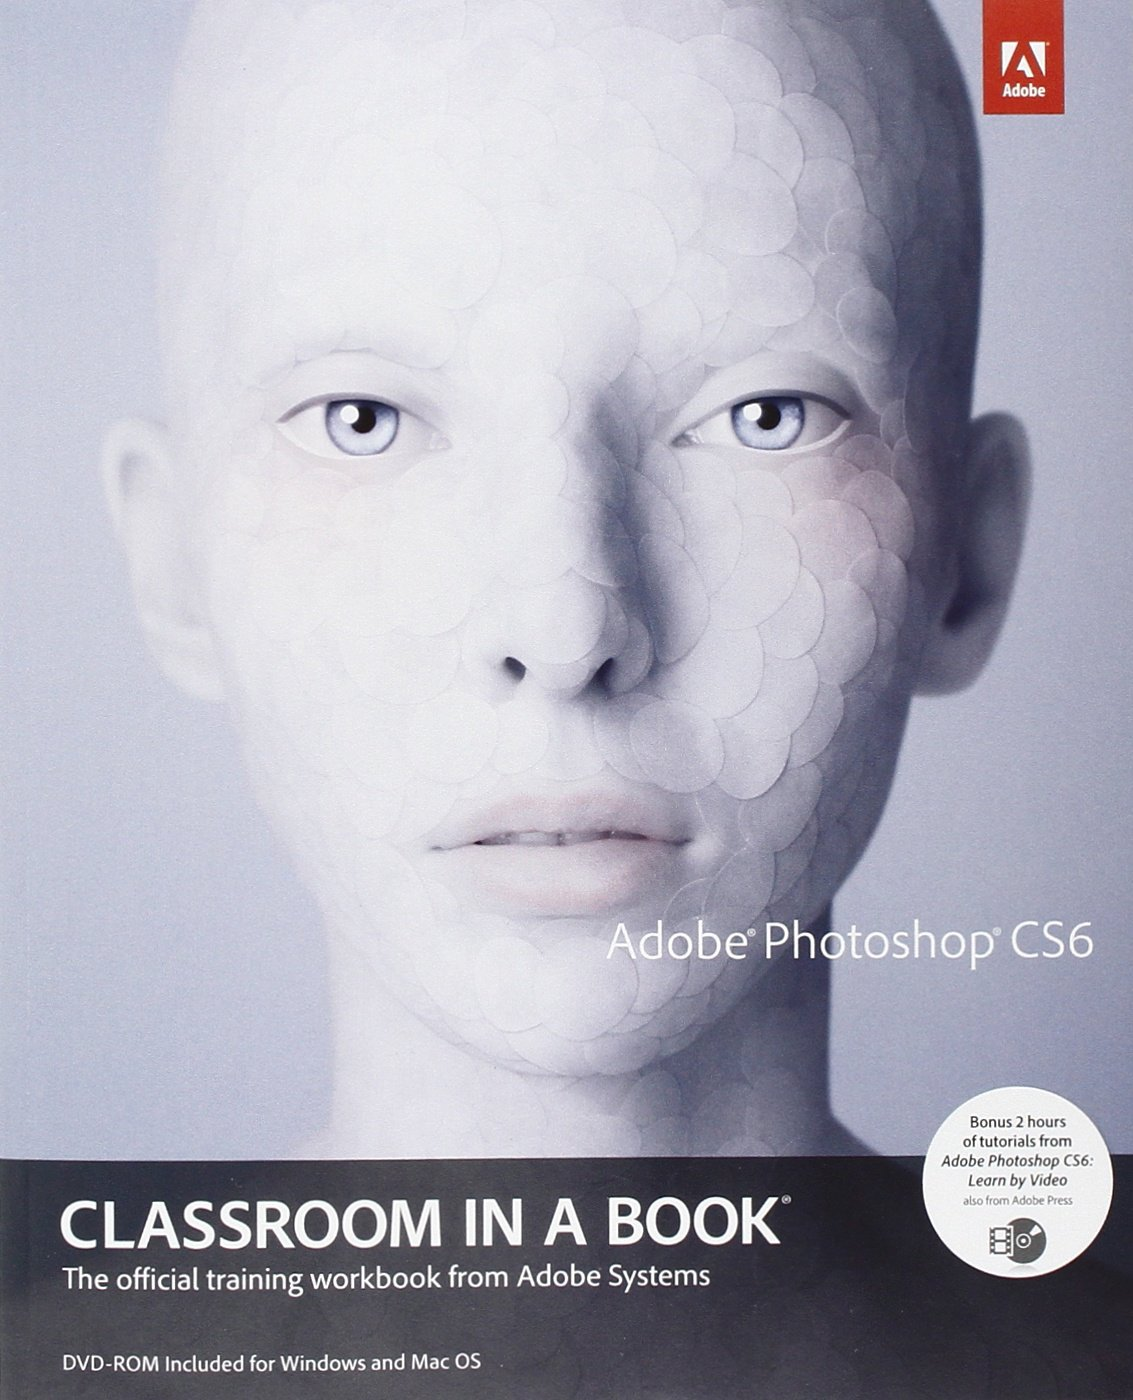 Buy adobe photoshop cs6 classroom in a book classroom in a book buy adobe photoshop cs6 classroom in a book classroom in a book adobe book online at low prices in india adobe photoshop cs6 classroom in a book baditri Choice Image